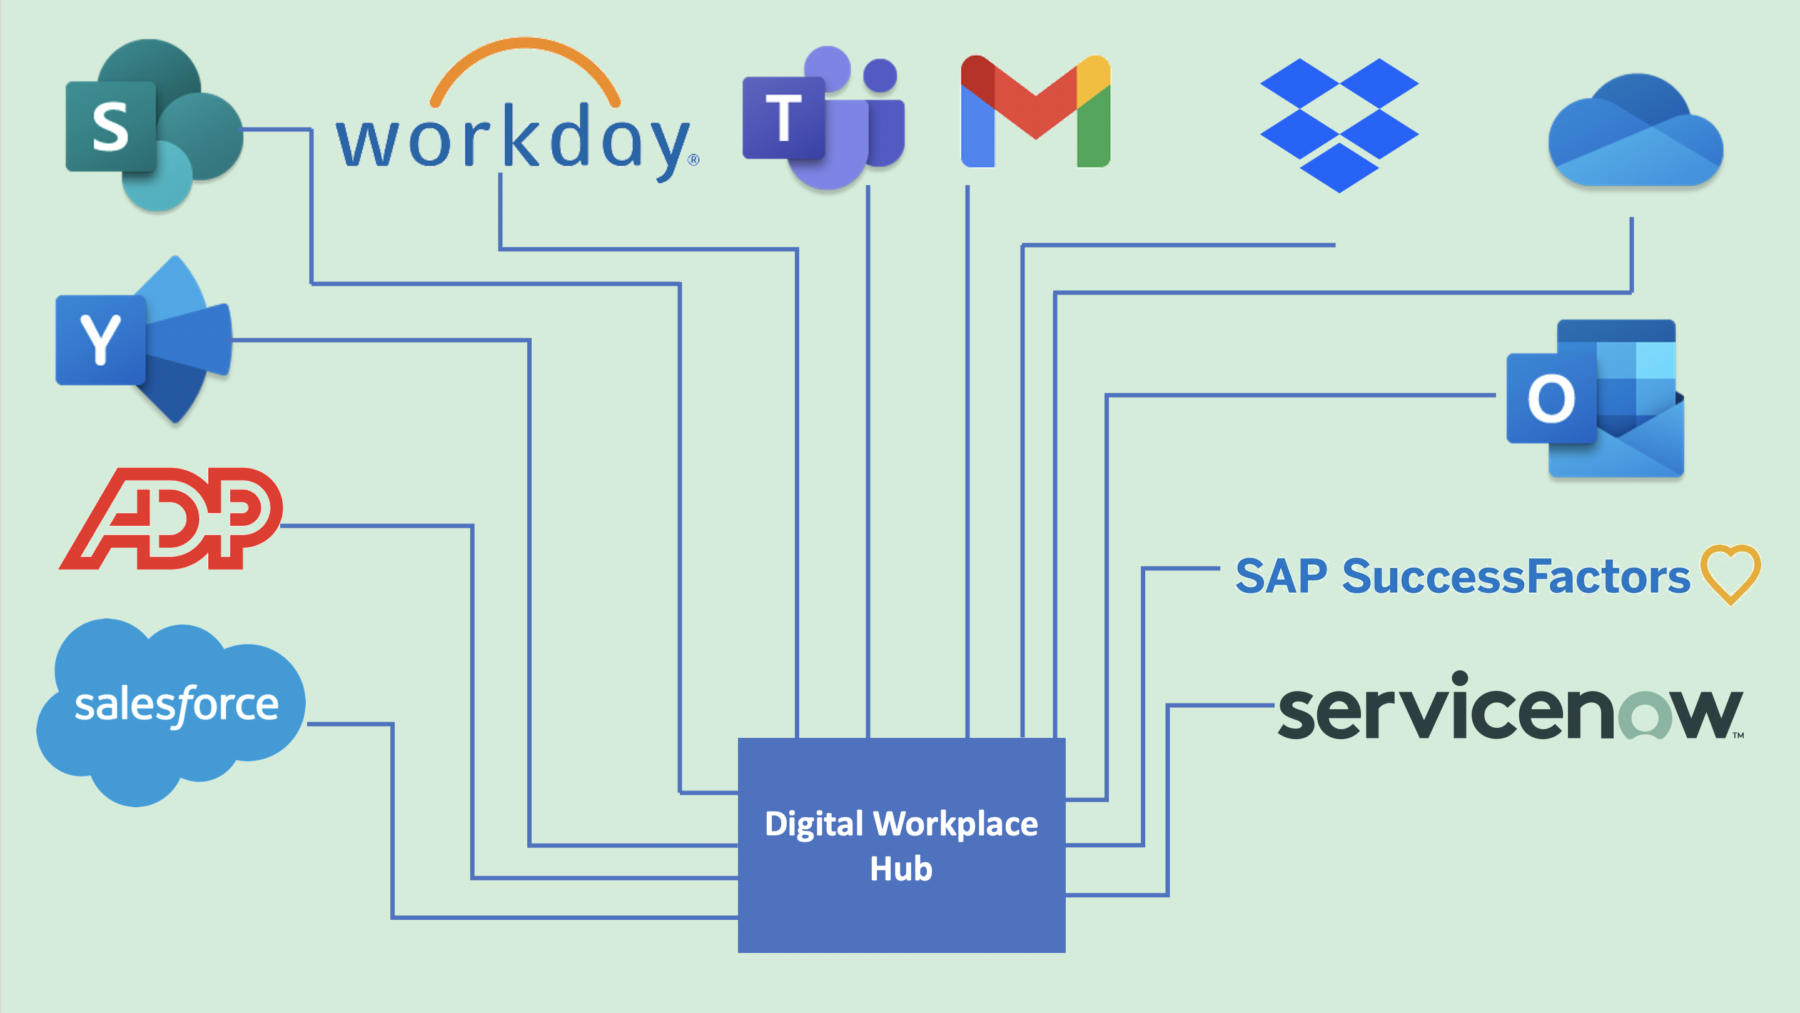 Multiple systems (Dropbox, Workday, ADP, SharePoint) linked as spokes to a digital workplace hub.